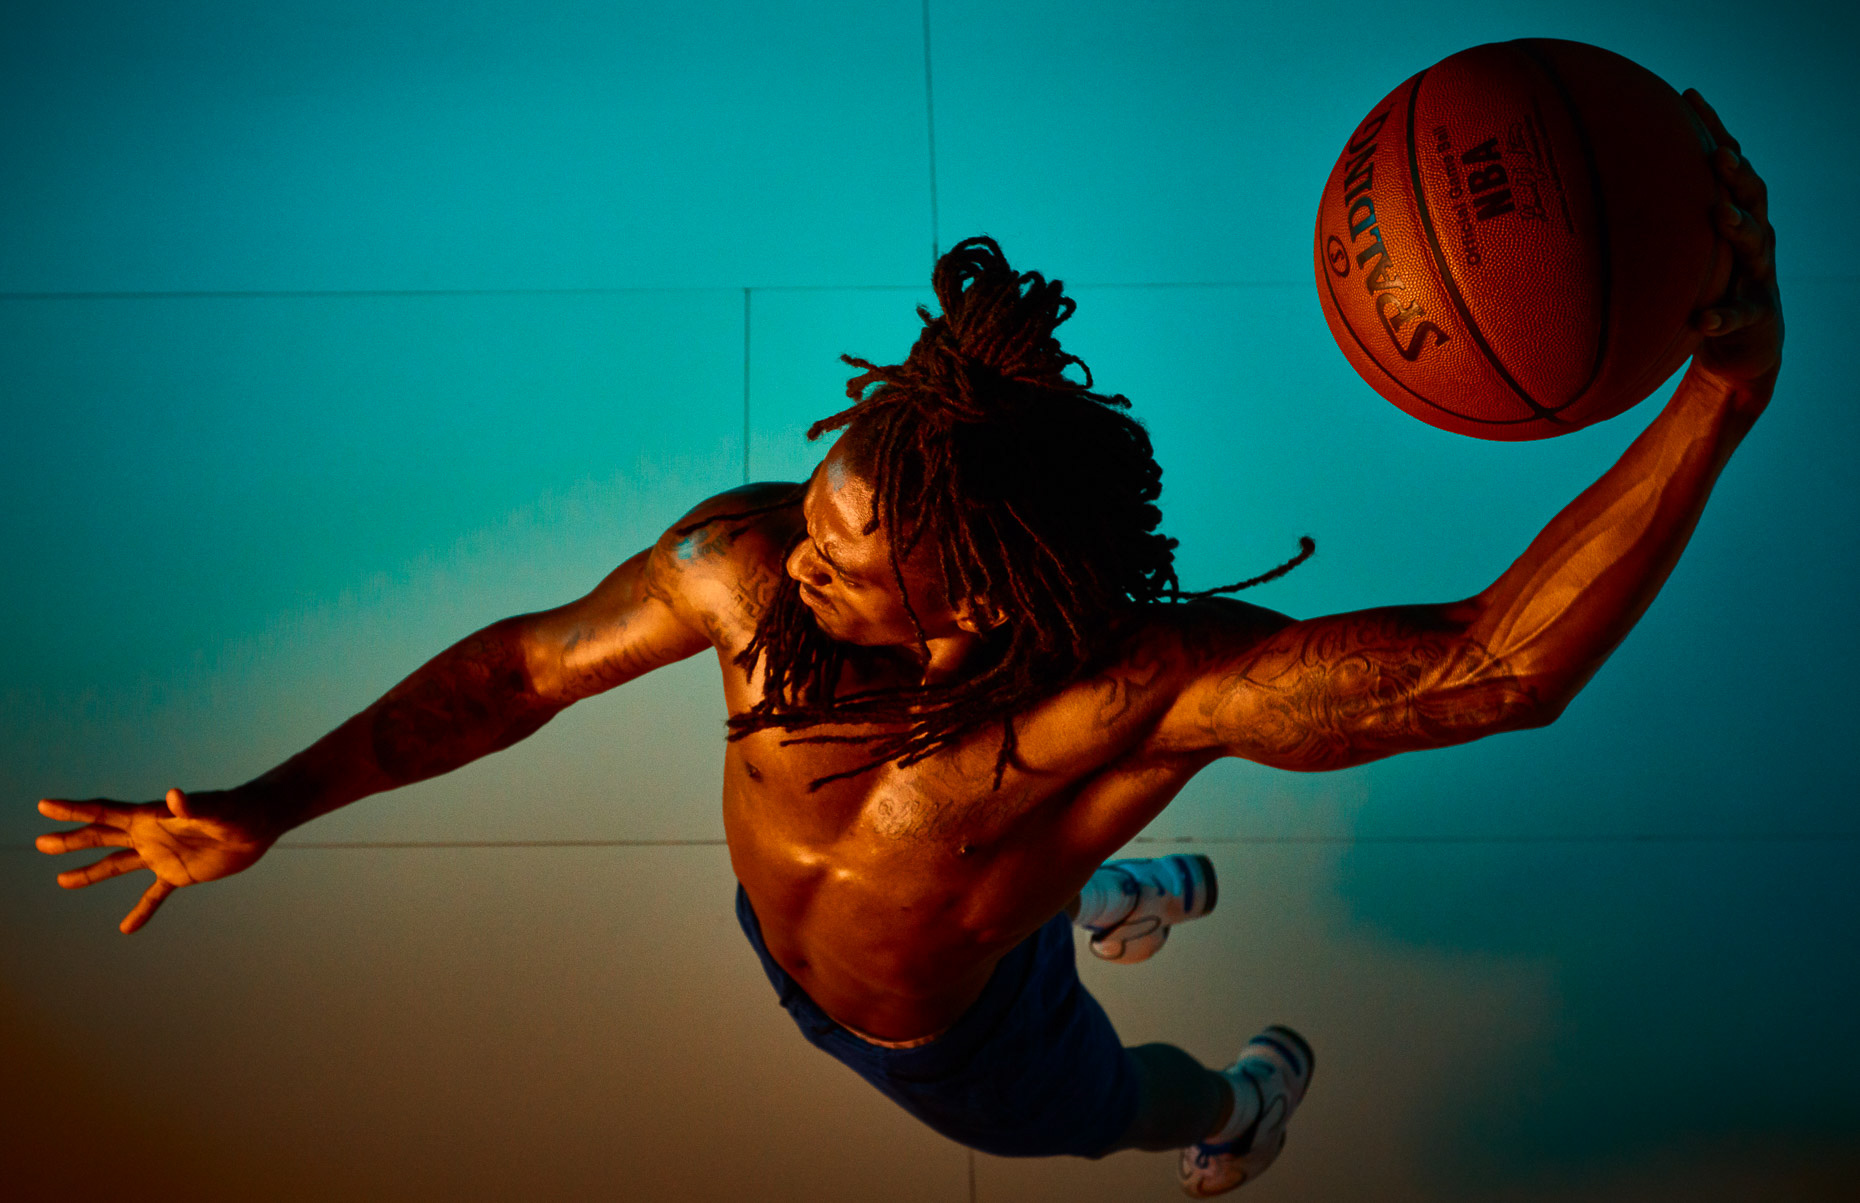 Nike basketball action shot of Xavier Taylor from overhead with colorful orange and blue gels by Andy Batt